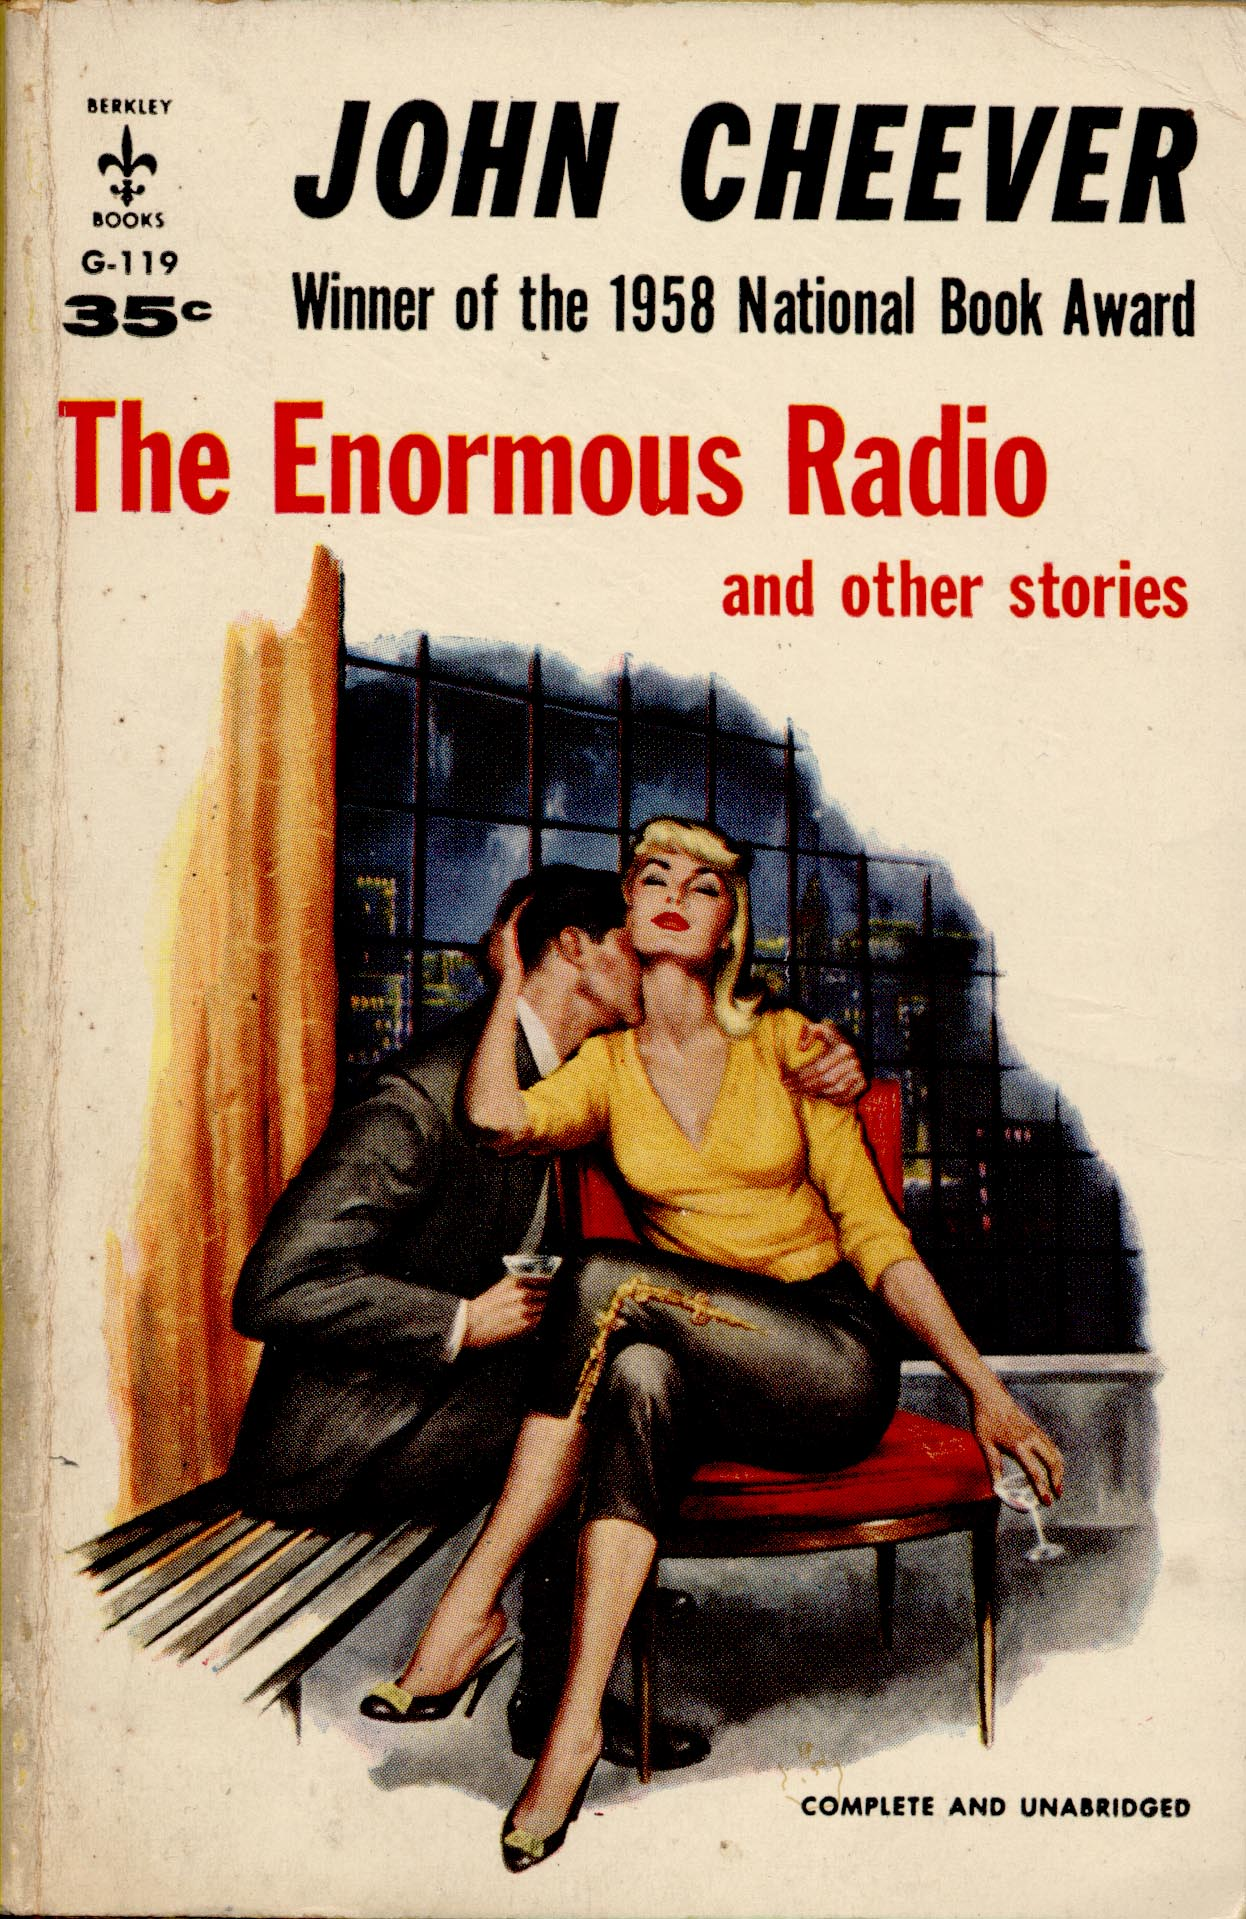 the enormous radio by john cheever When the stories of john cheever was originally published, it became an immediate national bestseller and won the pulitzer prize from the early wonder and disillusionment of city life in the enormous radio to the surprising discoveries and common mysteries of suburbia in the.